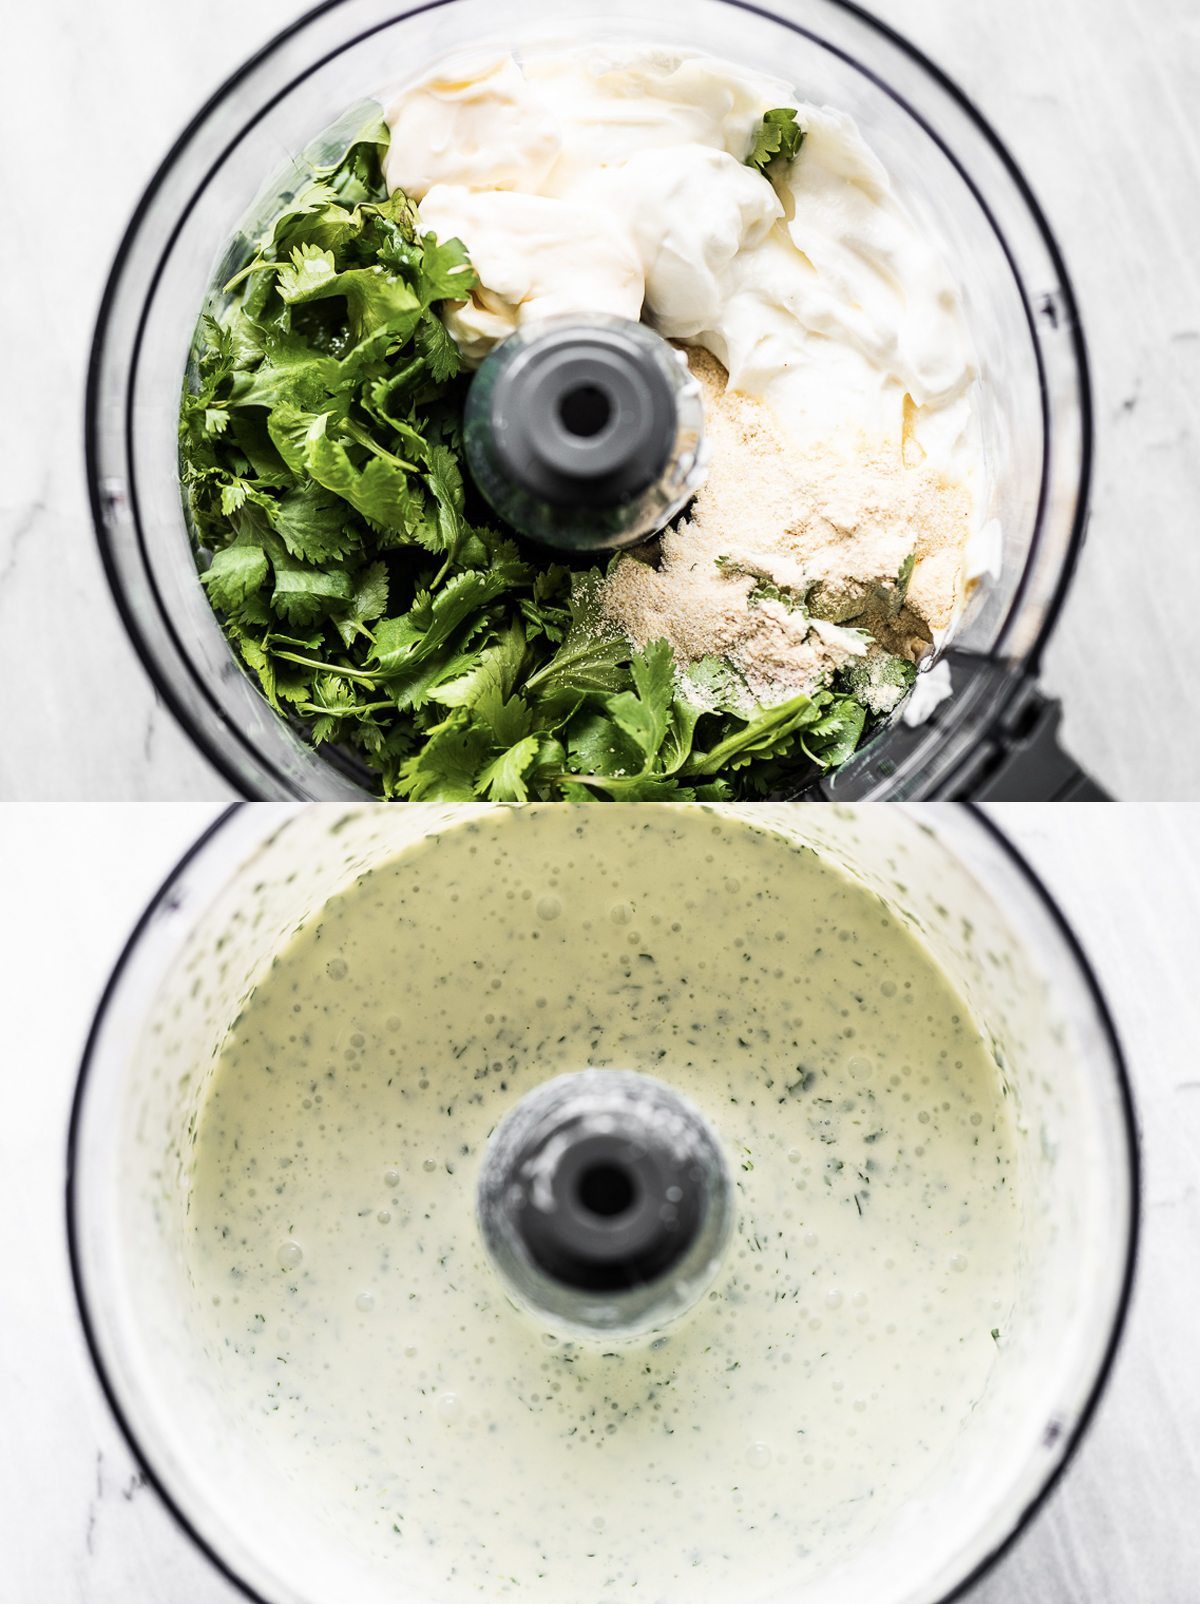 Making cilantro lime ranch dressing in a food processor.